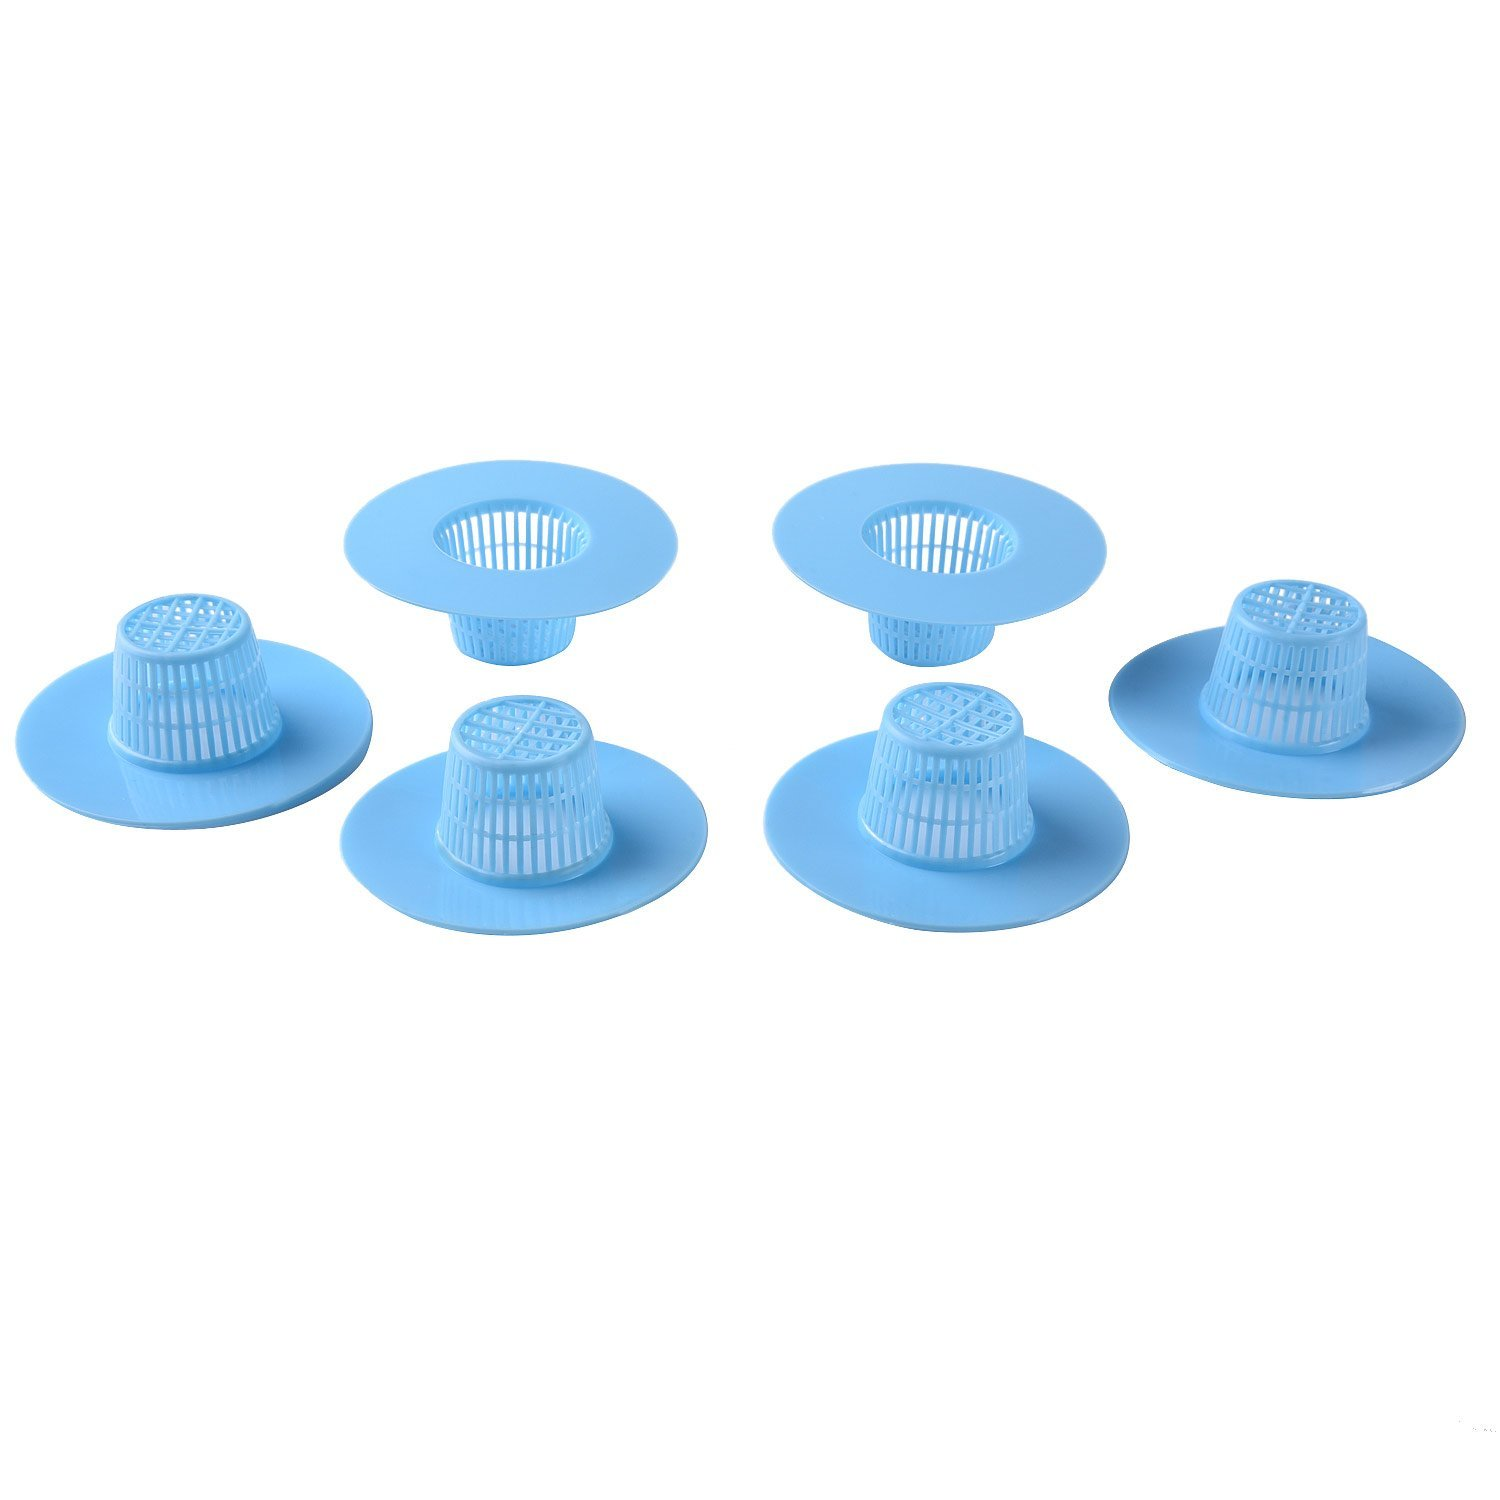 Blulu Plastic Kitchen Bath Sink Strainer Filter Net Drain Hair Catcher Stopper, Blue, 6 Pack by Blulu